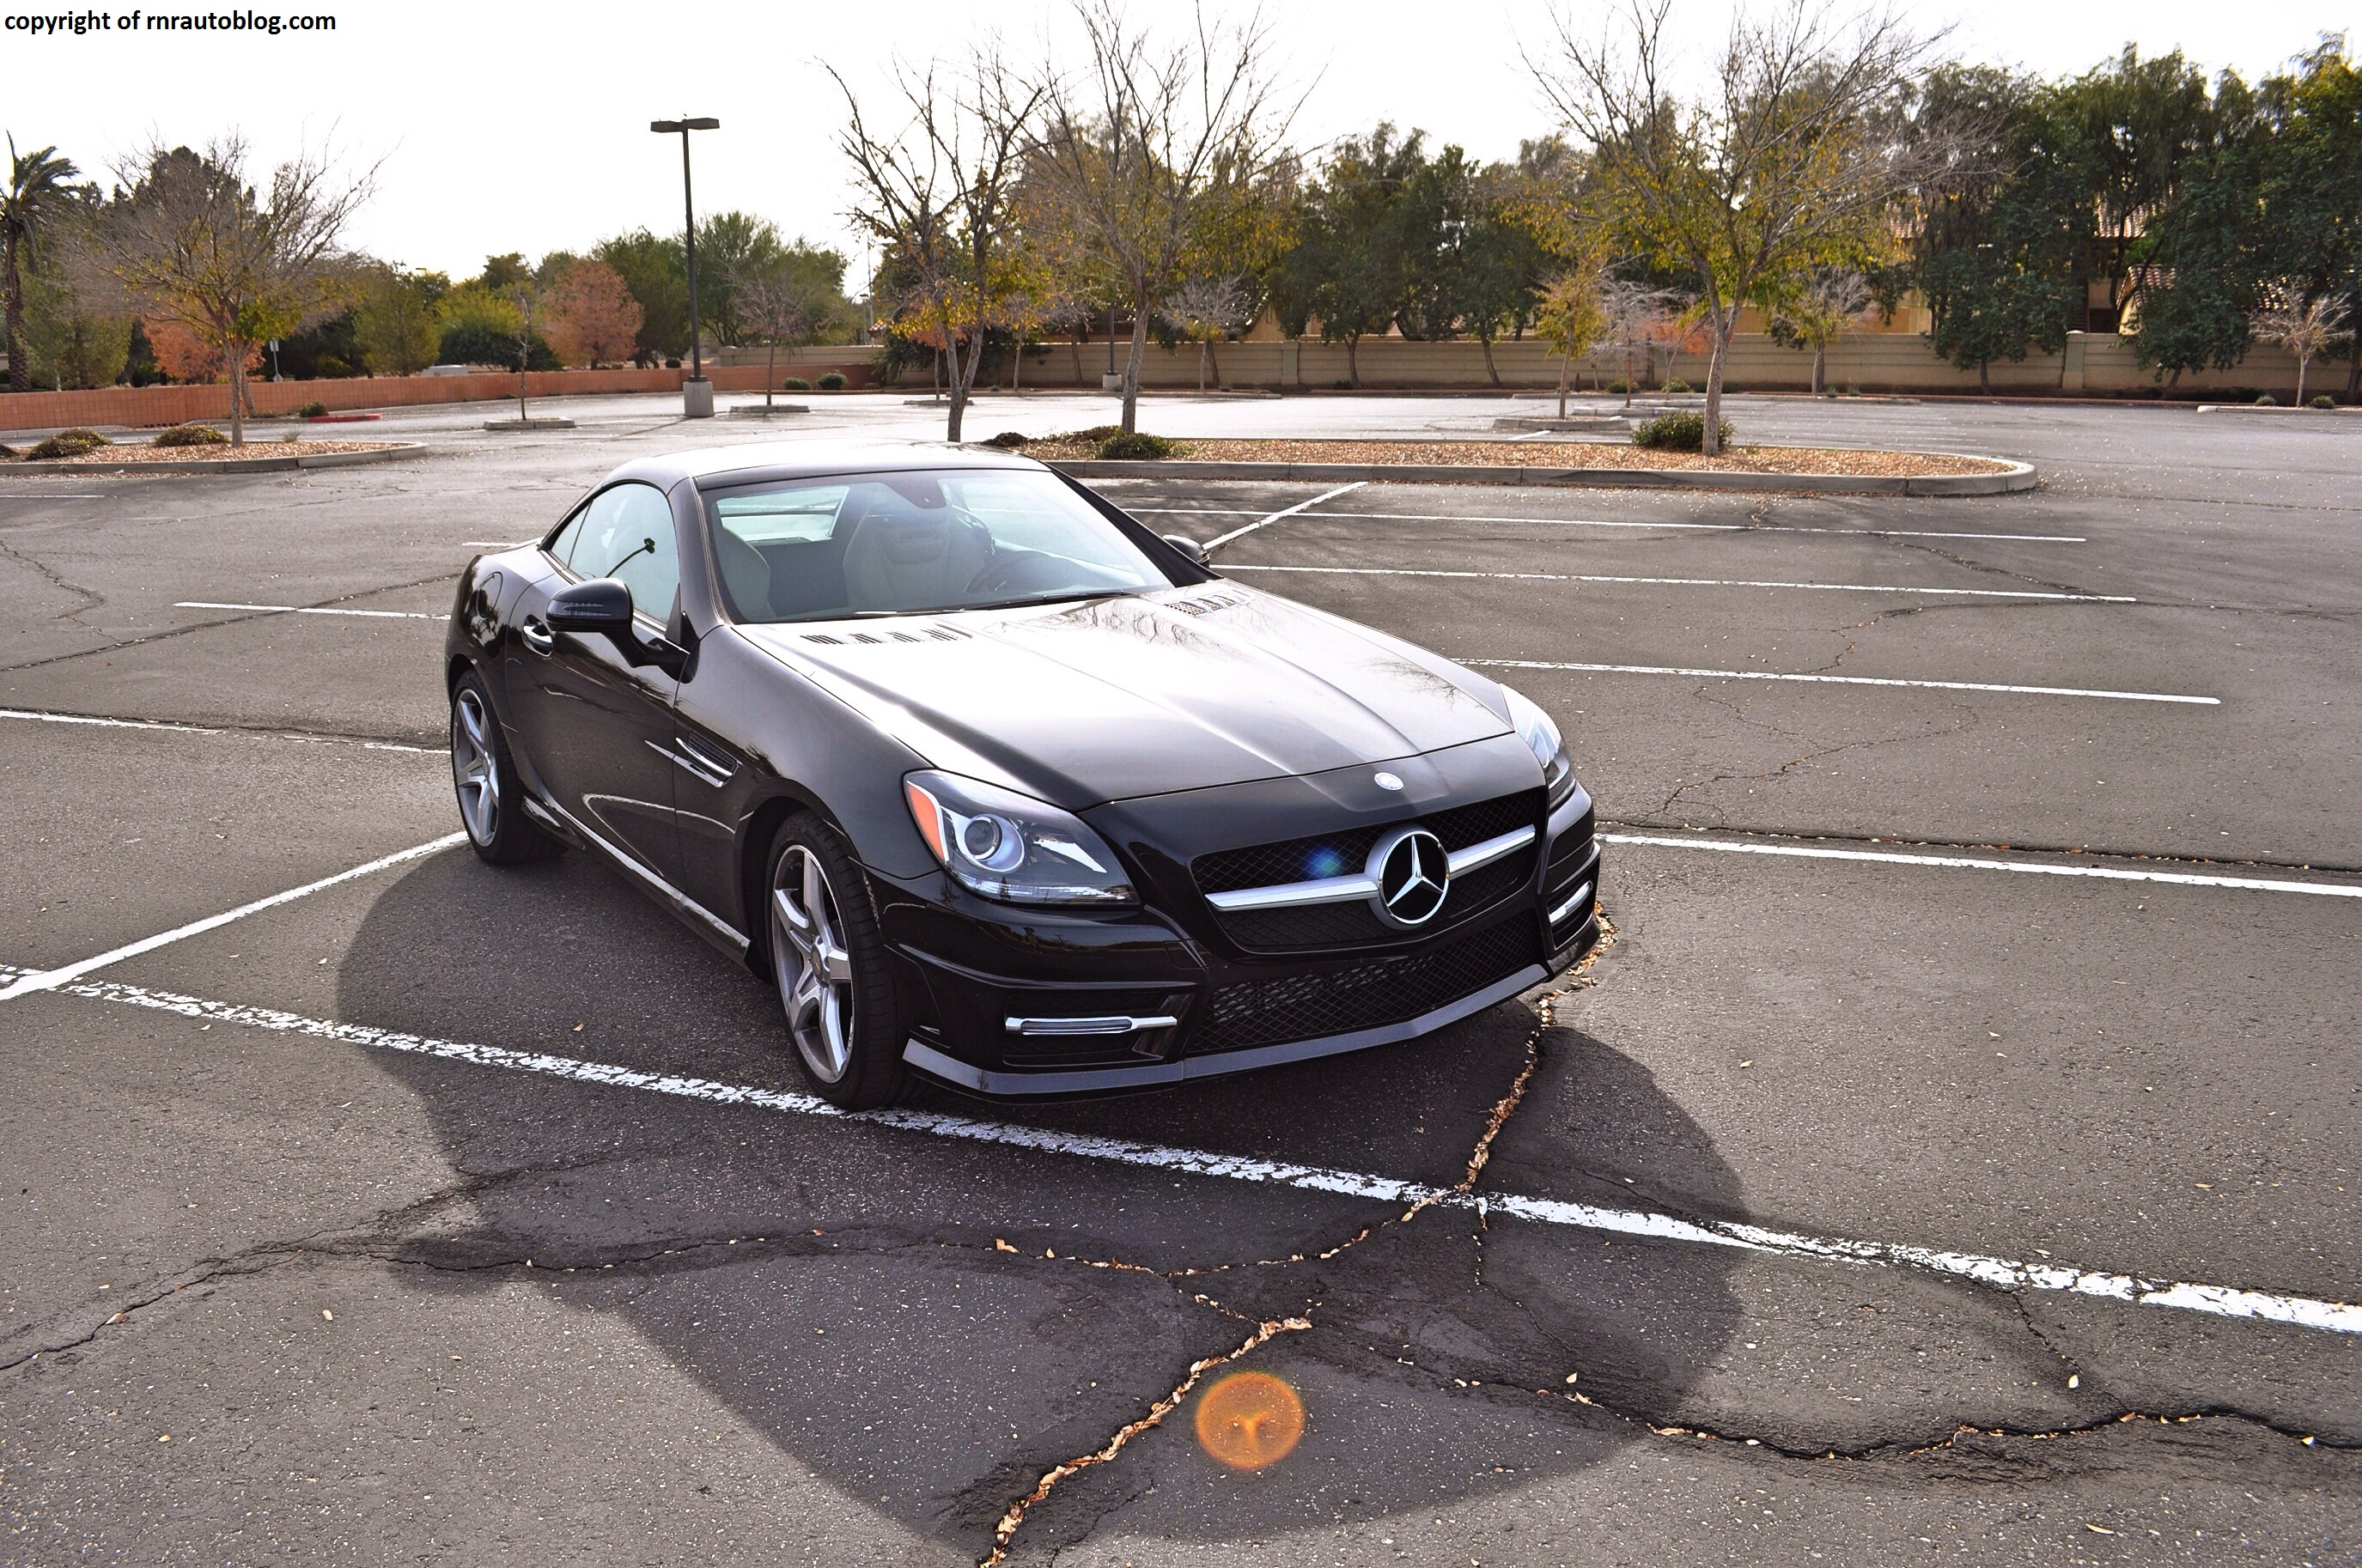 front car benz diesel amg cdi cornering mercedes review evo sport photo slk